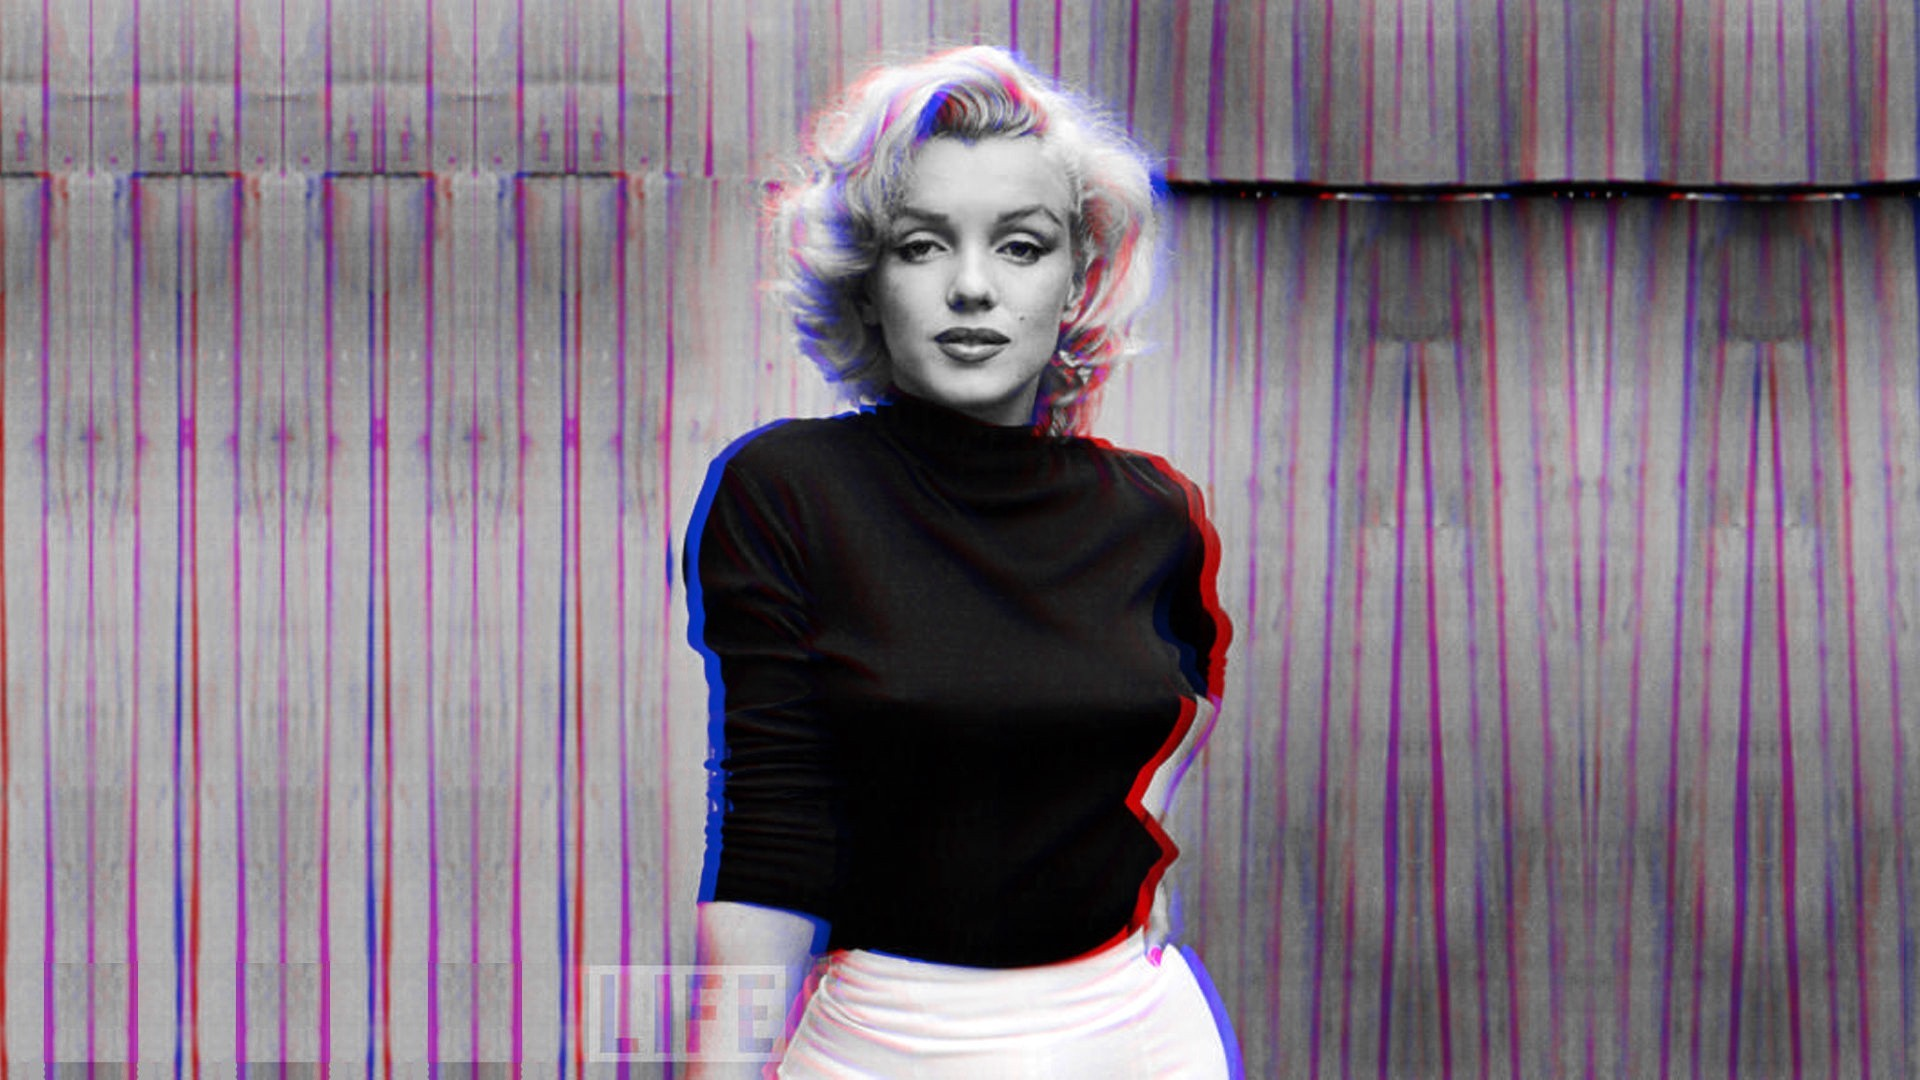 Marilyn Monroe Wallpapers 72 images 1920x1080